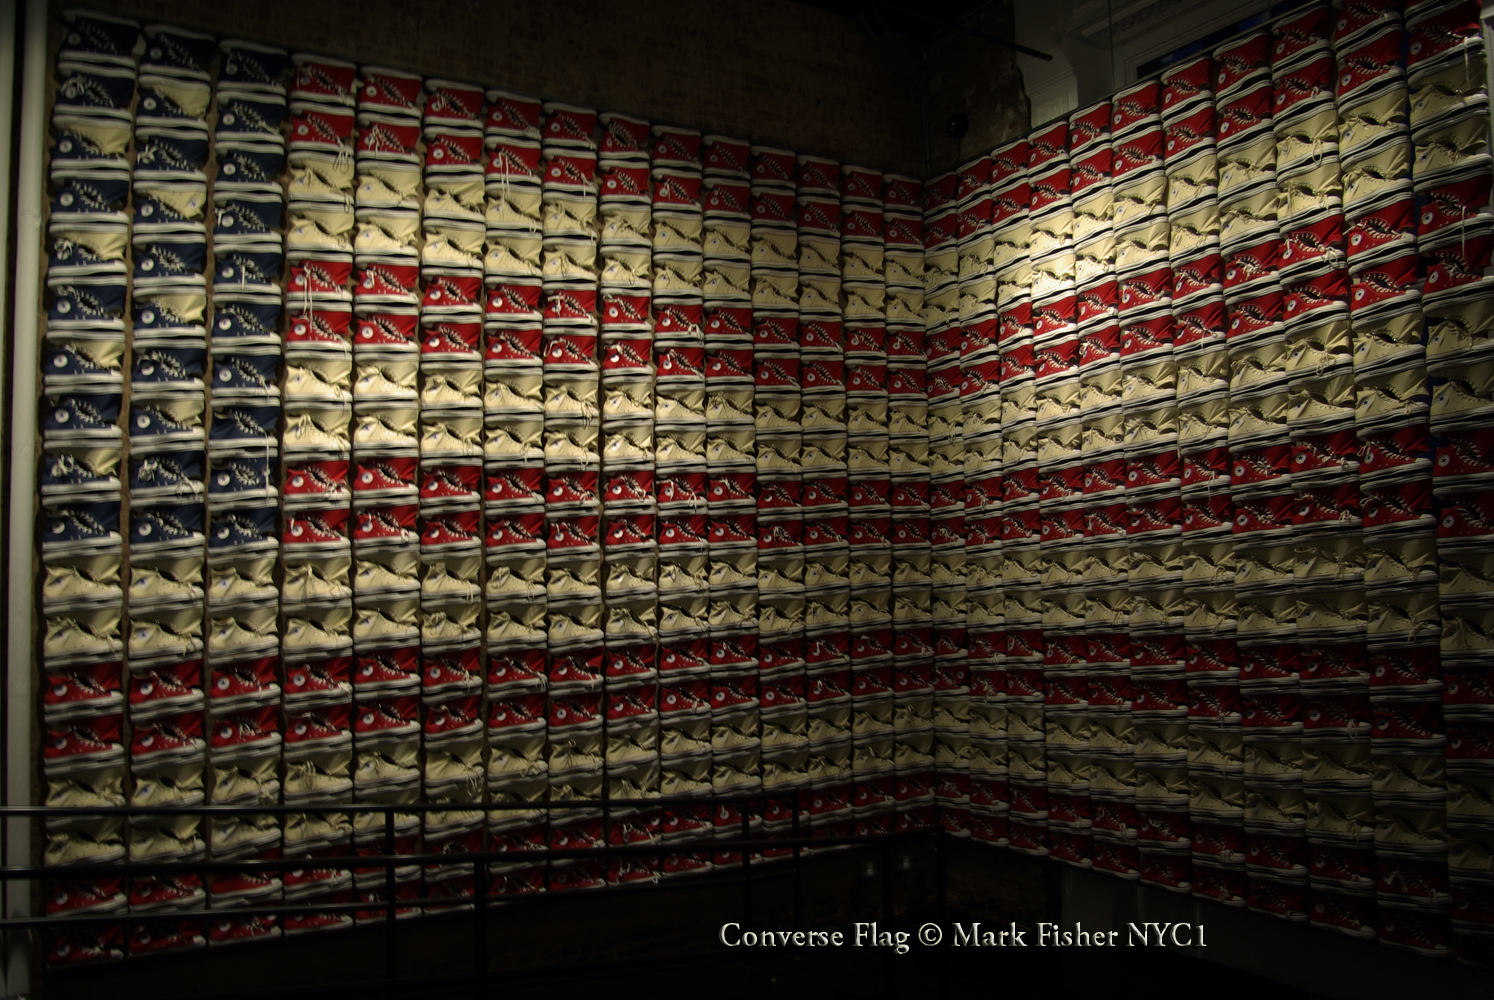 83a4e07334fe PHOTOGRAPHER MARK FISHER IMAGES  New York Converse Store • Shoe Flag ...